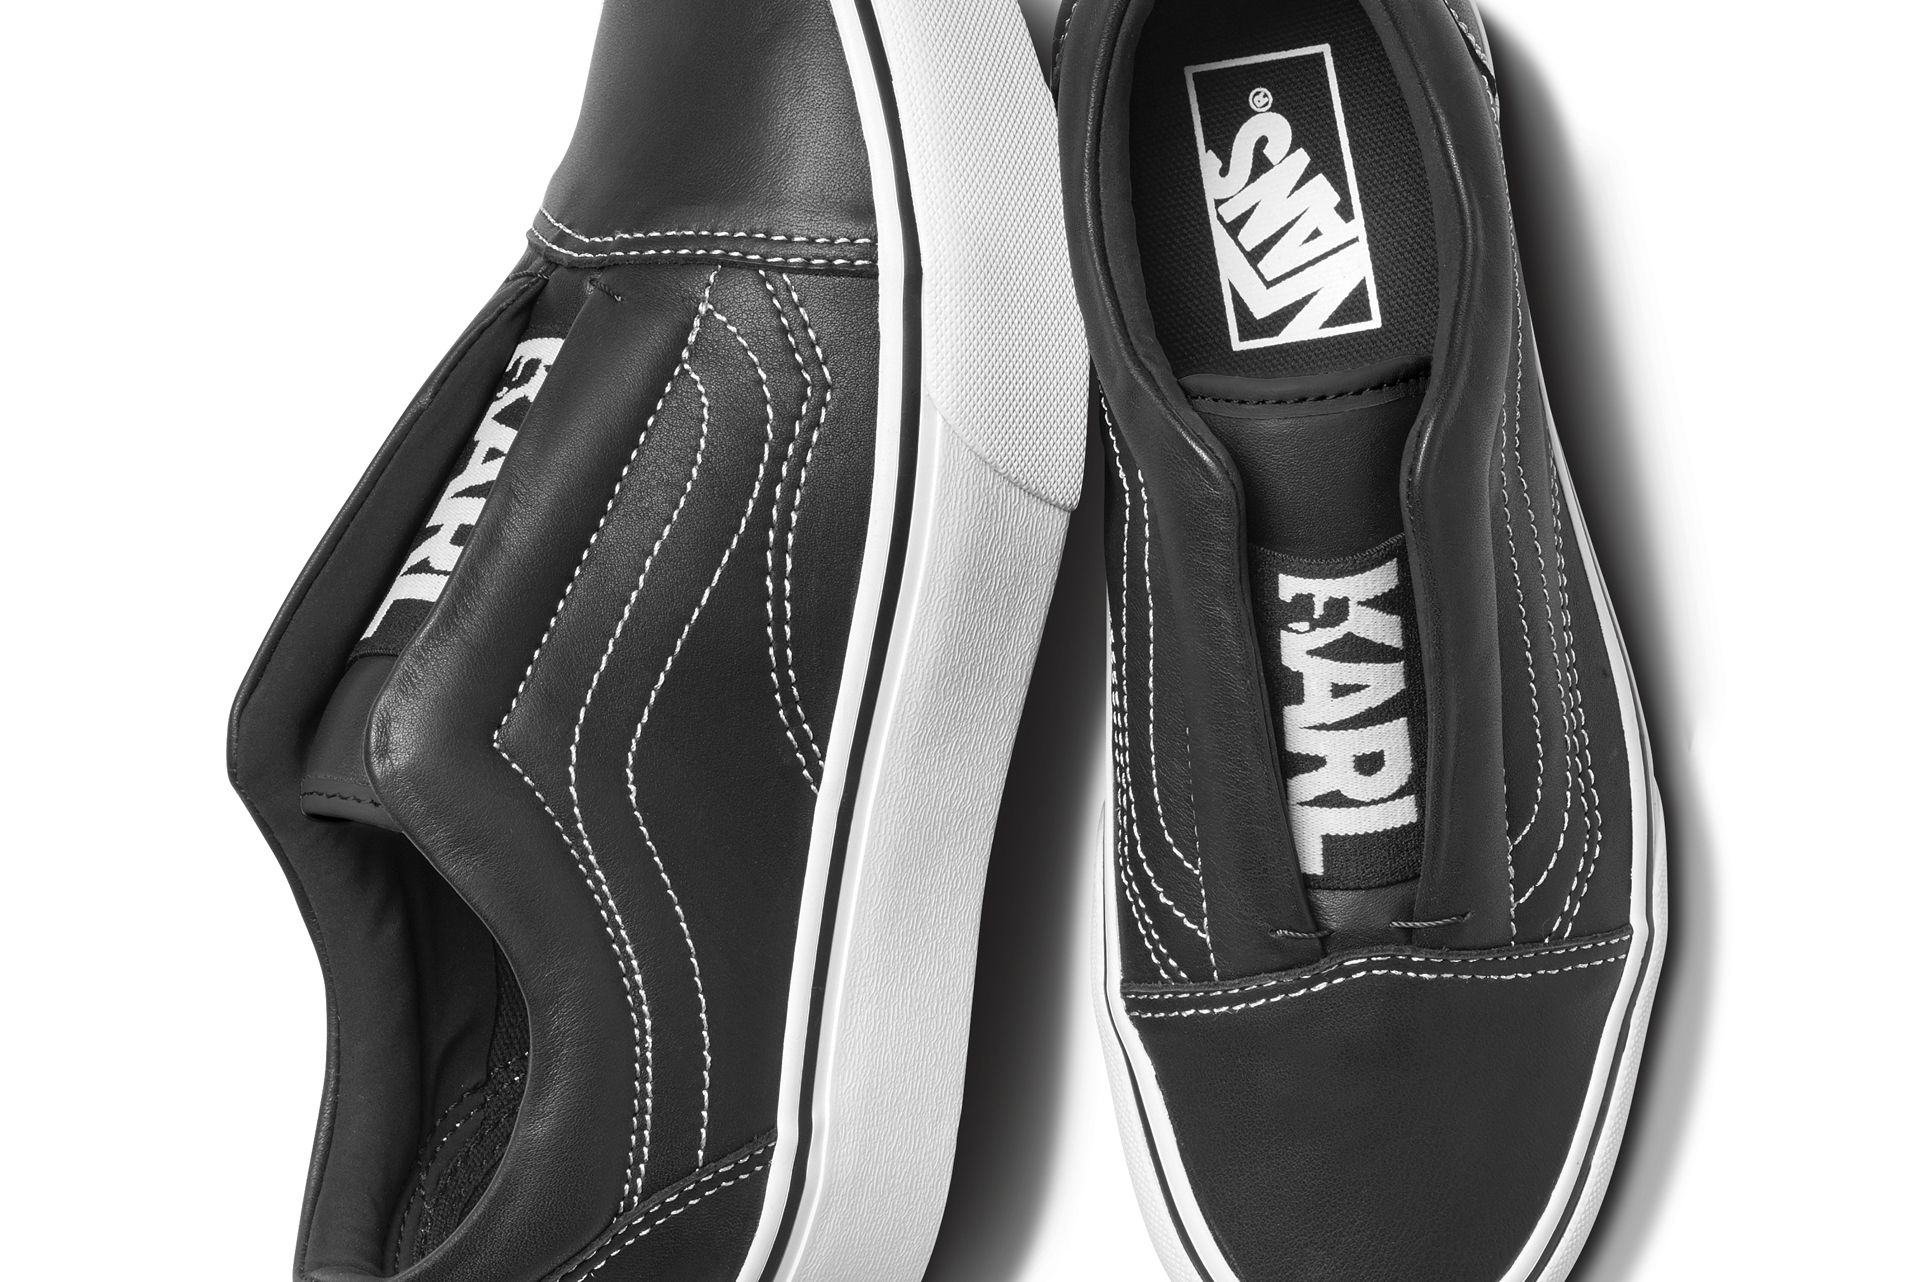 Vans x Karl Lagerfeld Women's Collection